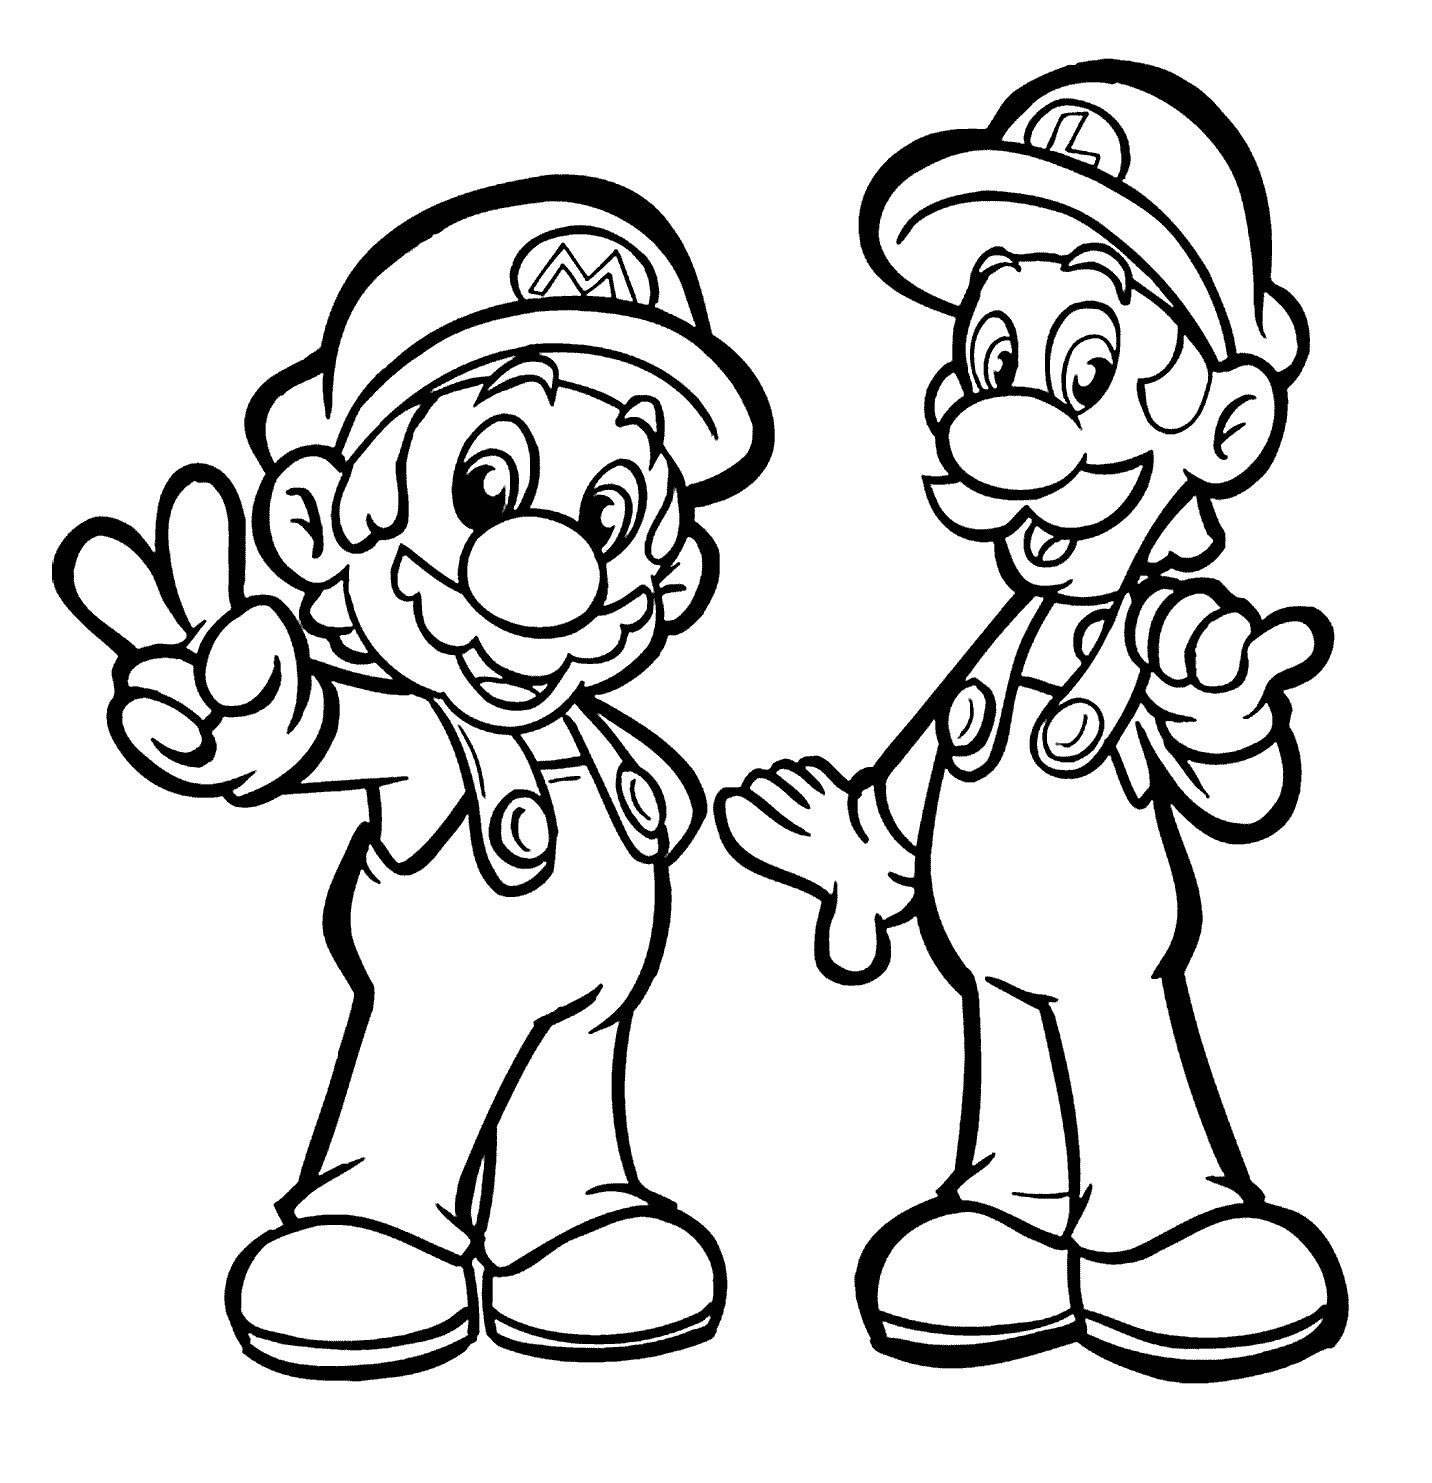 1432x1483 Super Mario Pictures To Print Save Mario And Luigi Coloring Pages